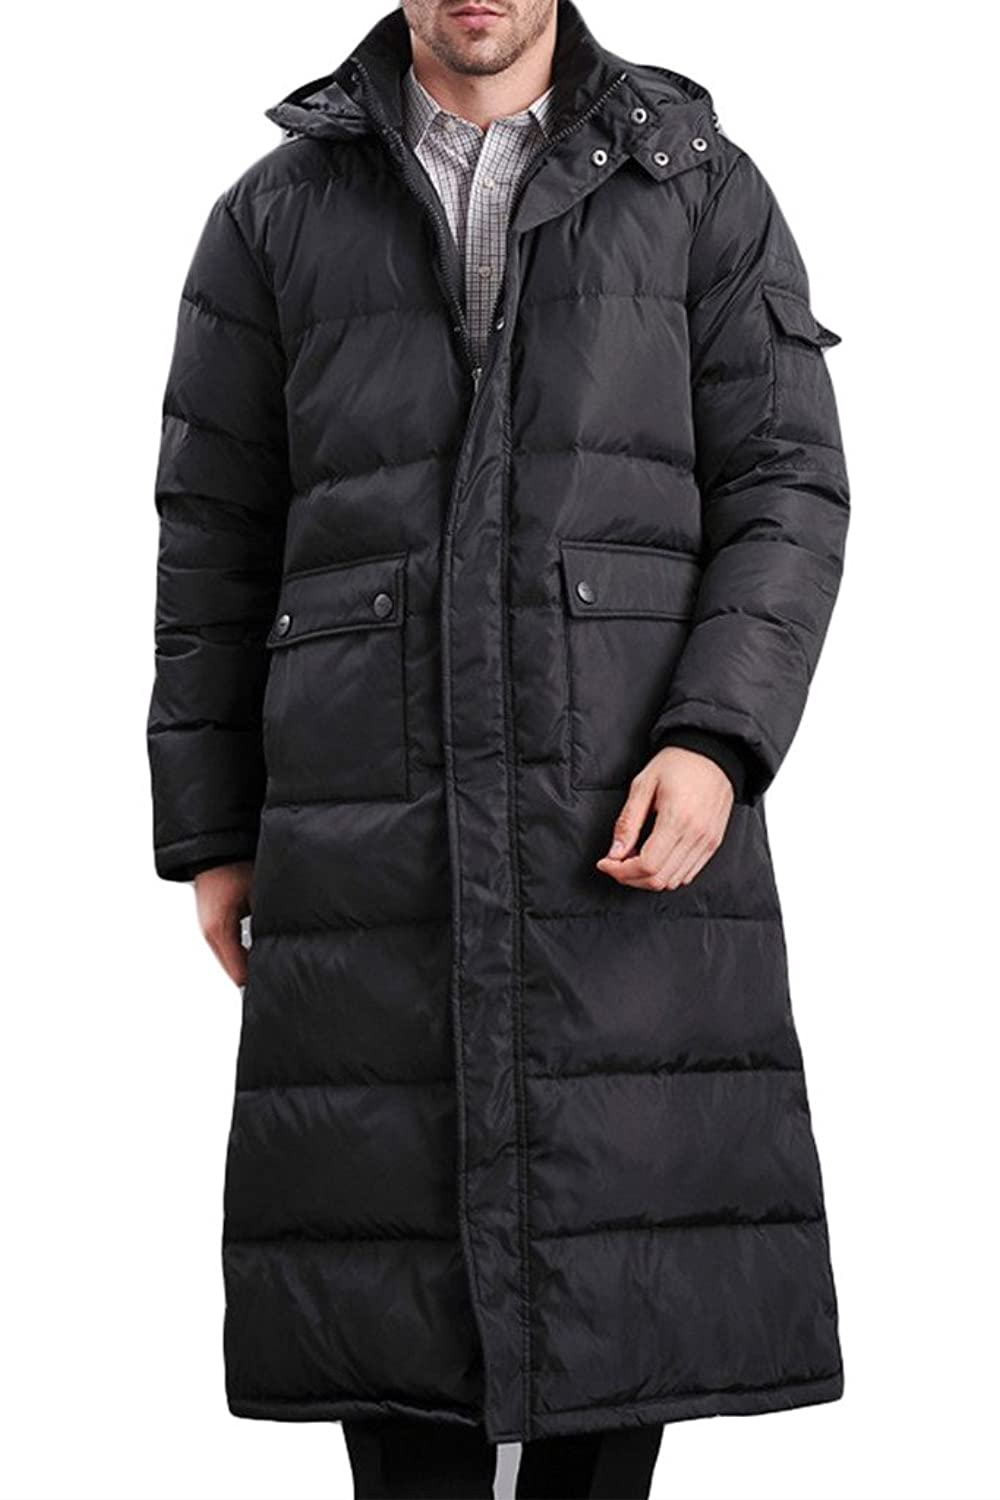 Find great deals on eBay for women padded jackets. Shop with confidence. Skip to main content. eBay: Shop by category. New Listing Winter Womens Padded Coat Long Jacket Warm Fur Collar Hooded Parka Outwear Slim. Brand New. $ to $ More colors. Buy It Now. Free Shipping.